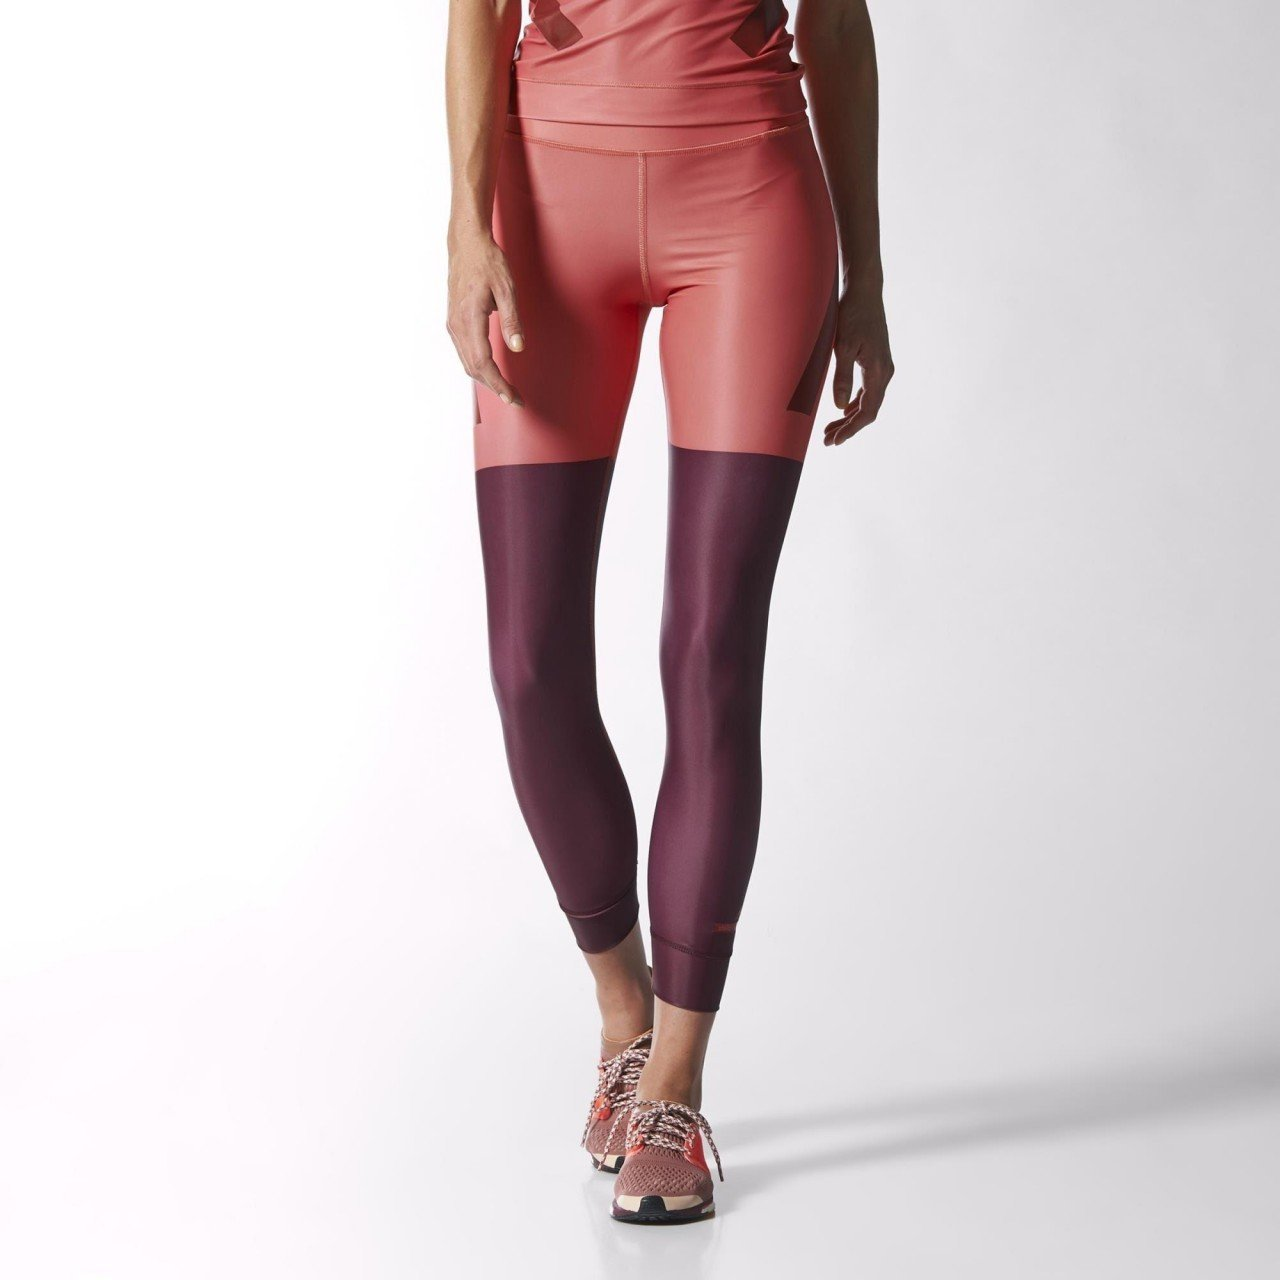 21238af208706 adidas by Stella McCartney Women's Techfit Running Tights - Pink/Maroon -  M: Amazon.co.uk: Sports & Outdoors